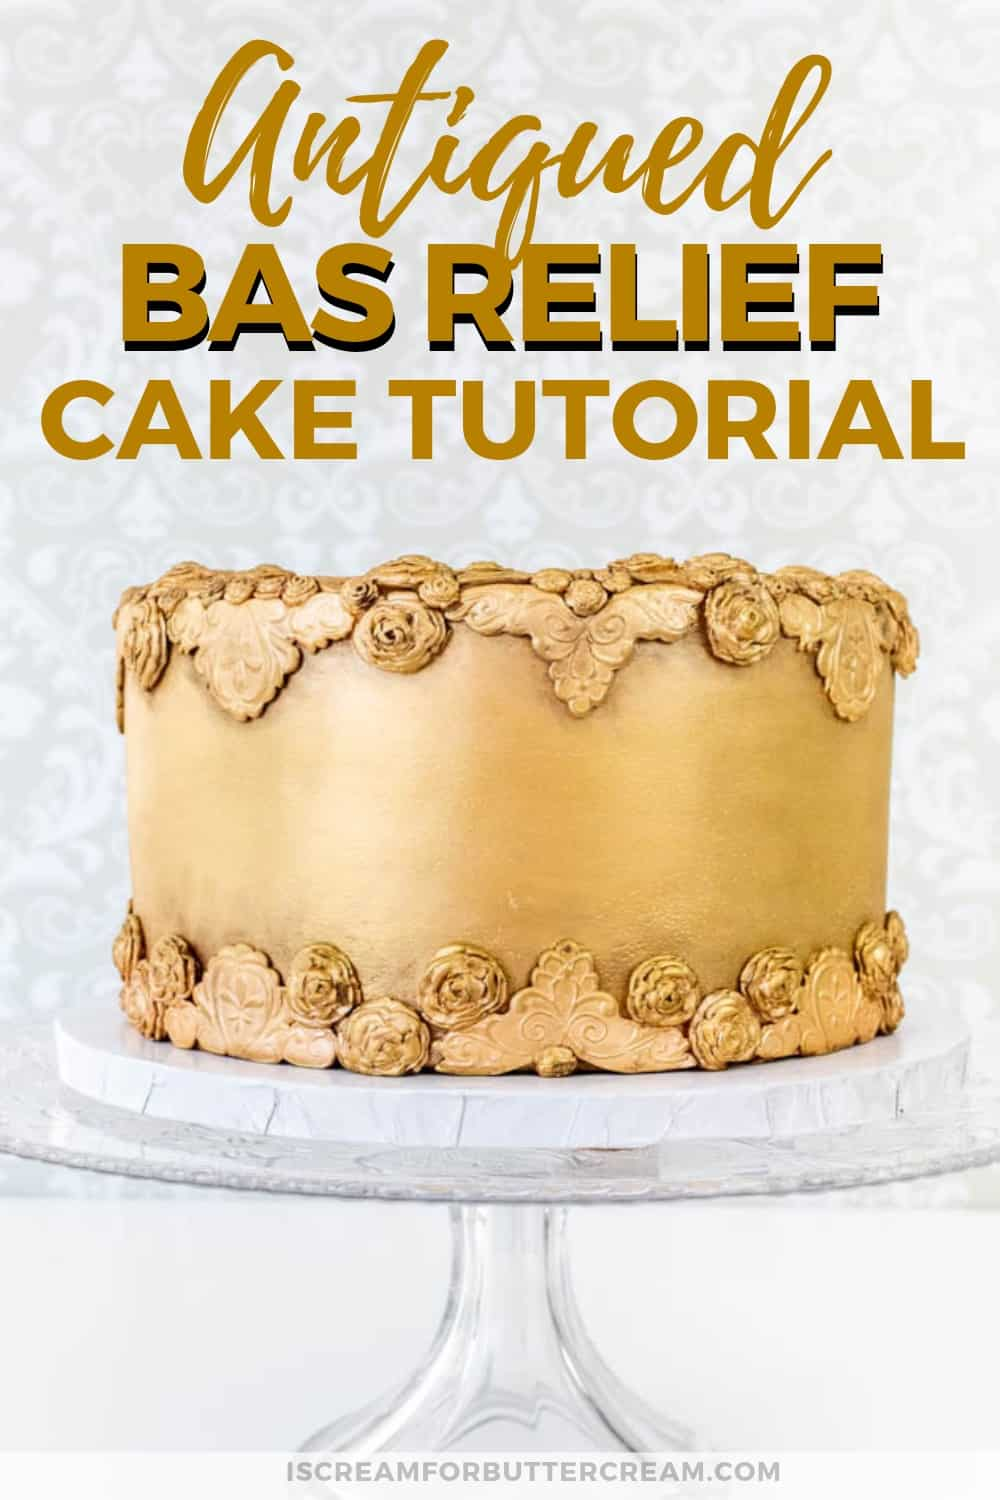 Antiqued Bas Relief Cake New Pin 1